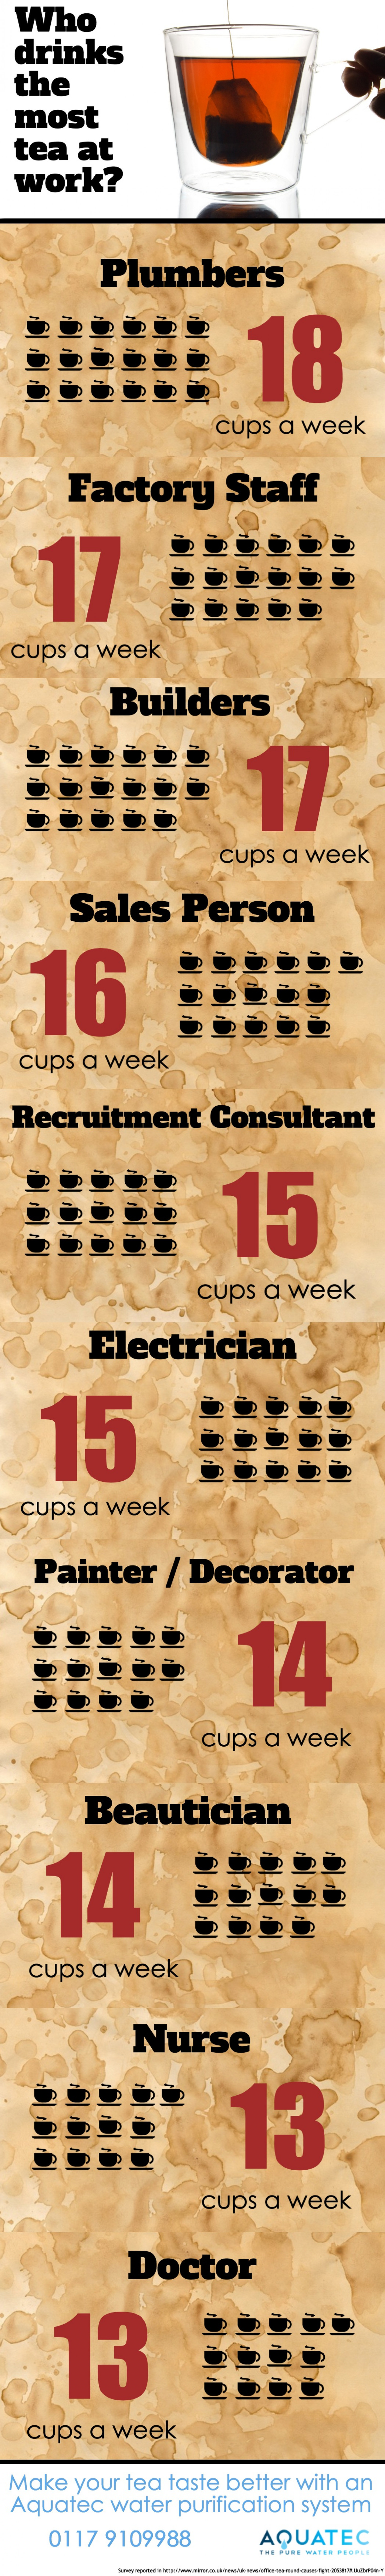 Who drinks the most tea at work? Infographic